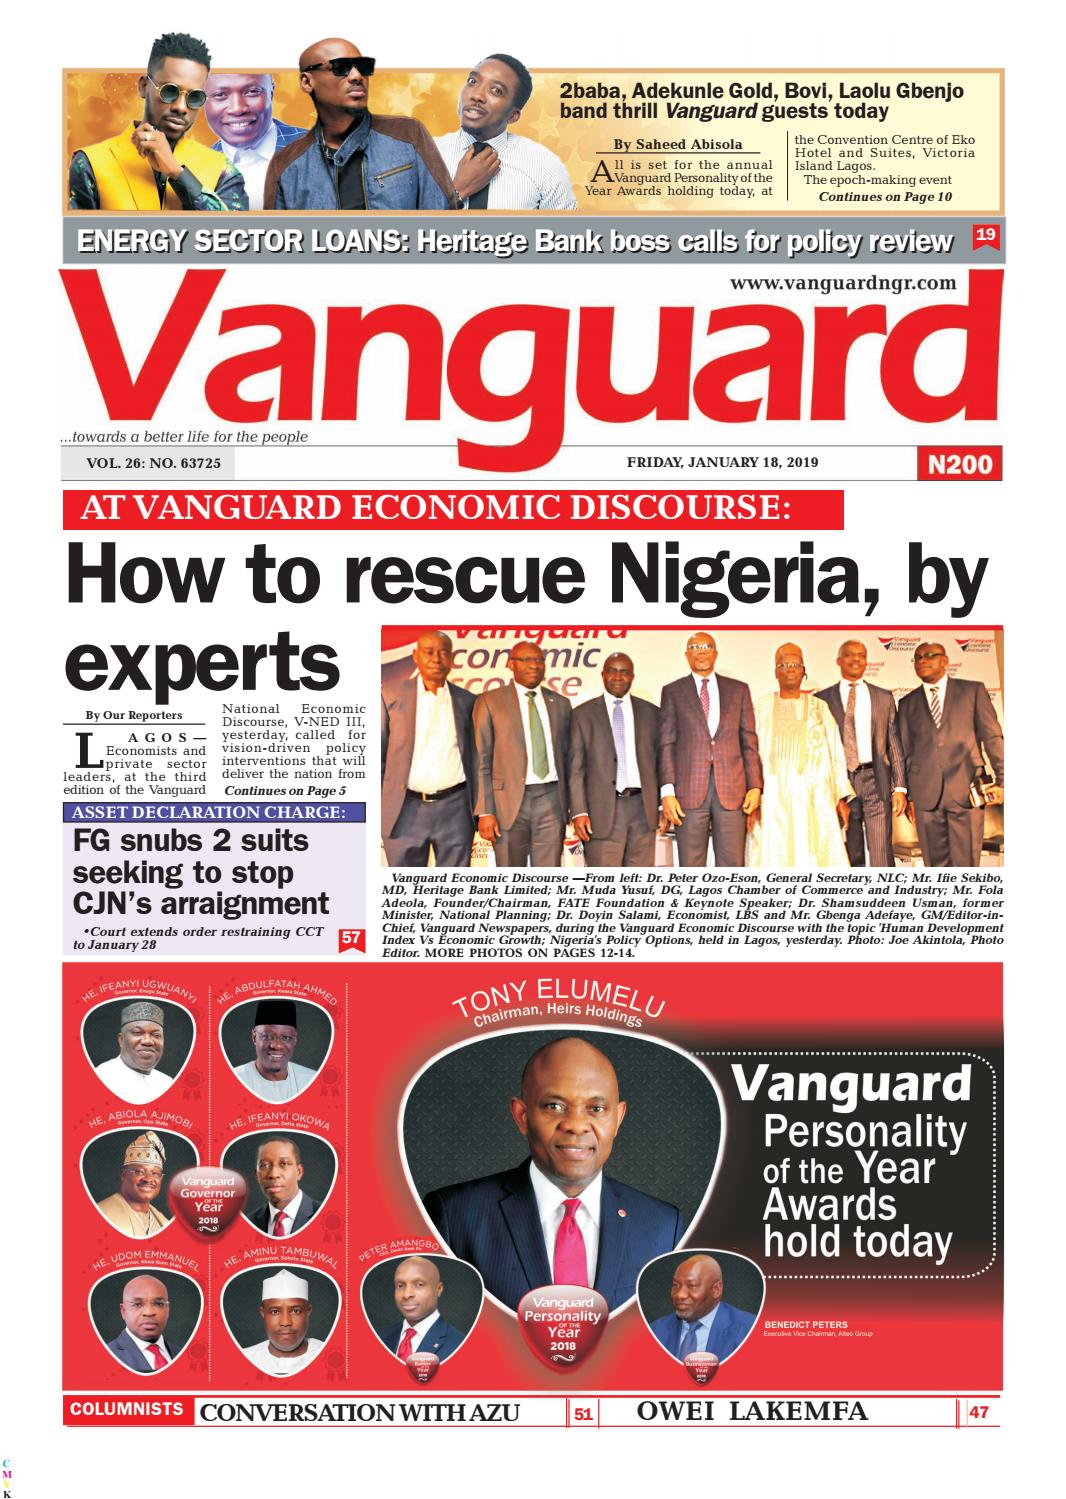 How to resuce Nigeria by experts by Vanguard Media Limited